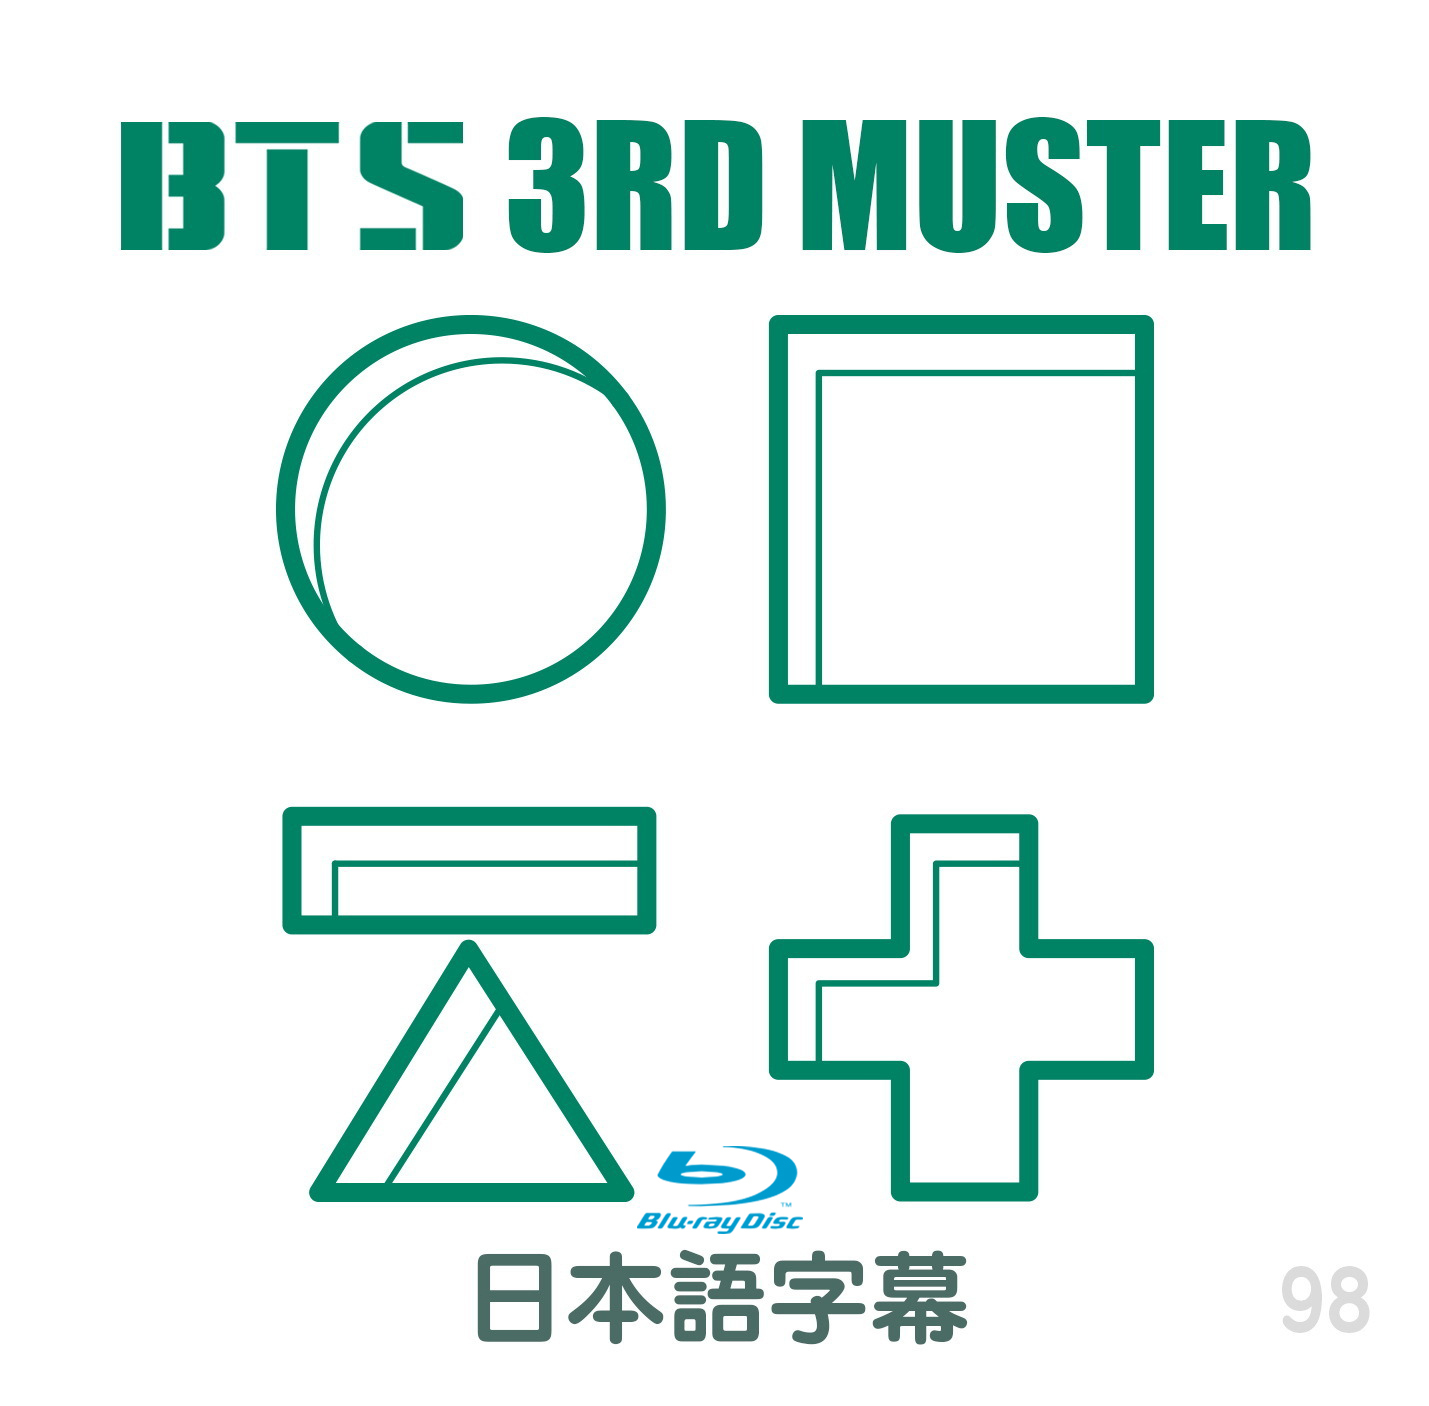 BTS 3RD MUSTER Blu-ray 日本語字幕 | ヘンボガールズ powered by BASE